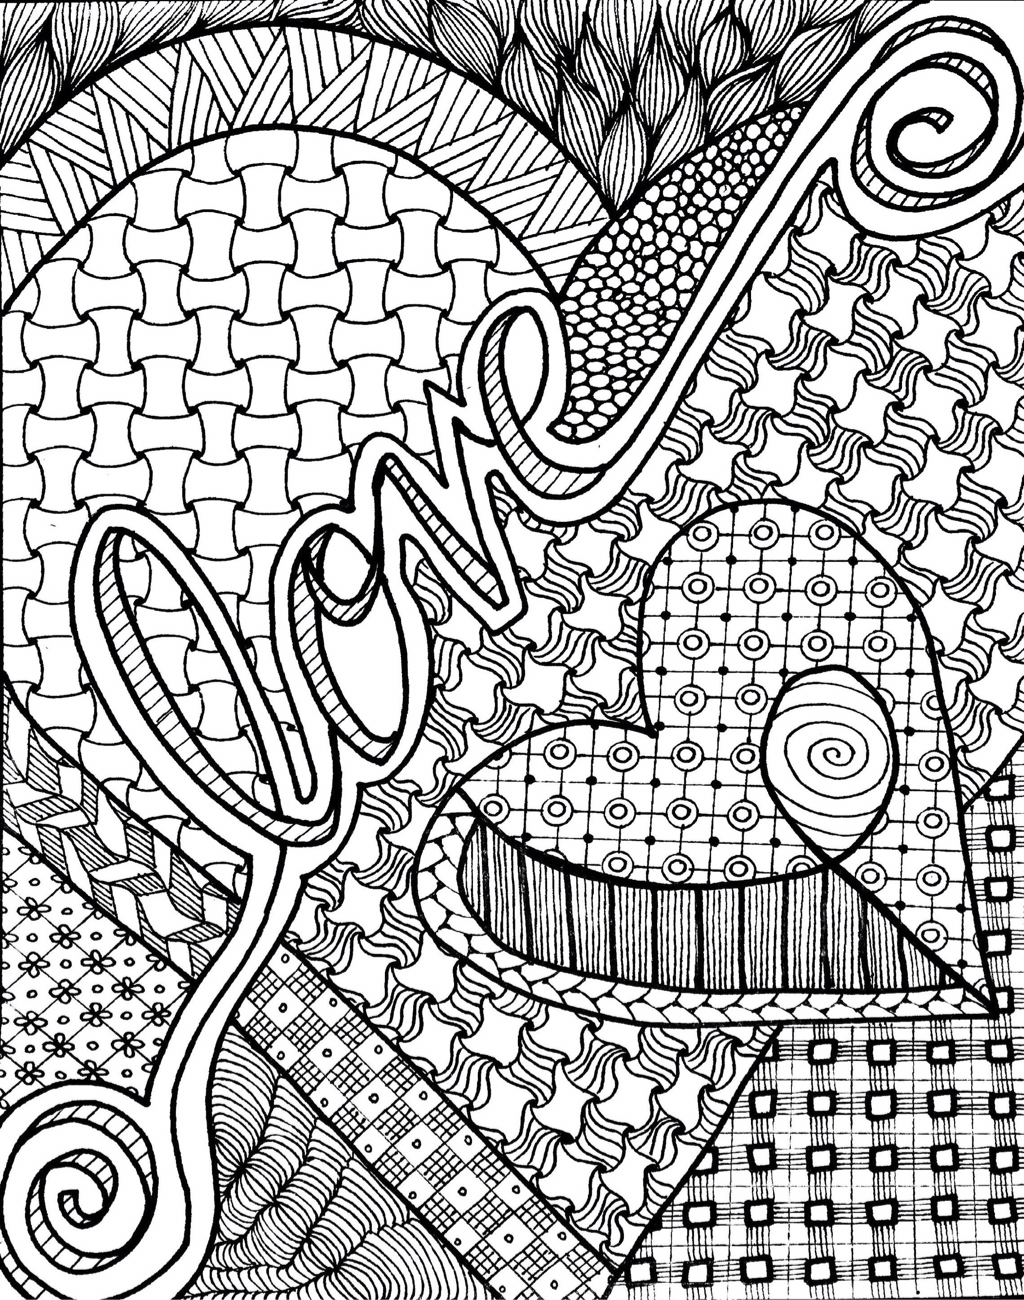 Free zentangleinspired 39 love 39 coloring page for adults or